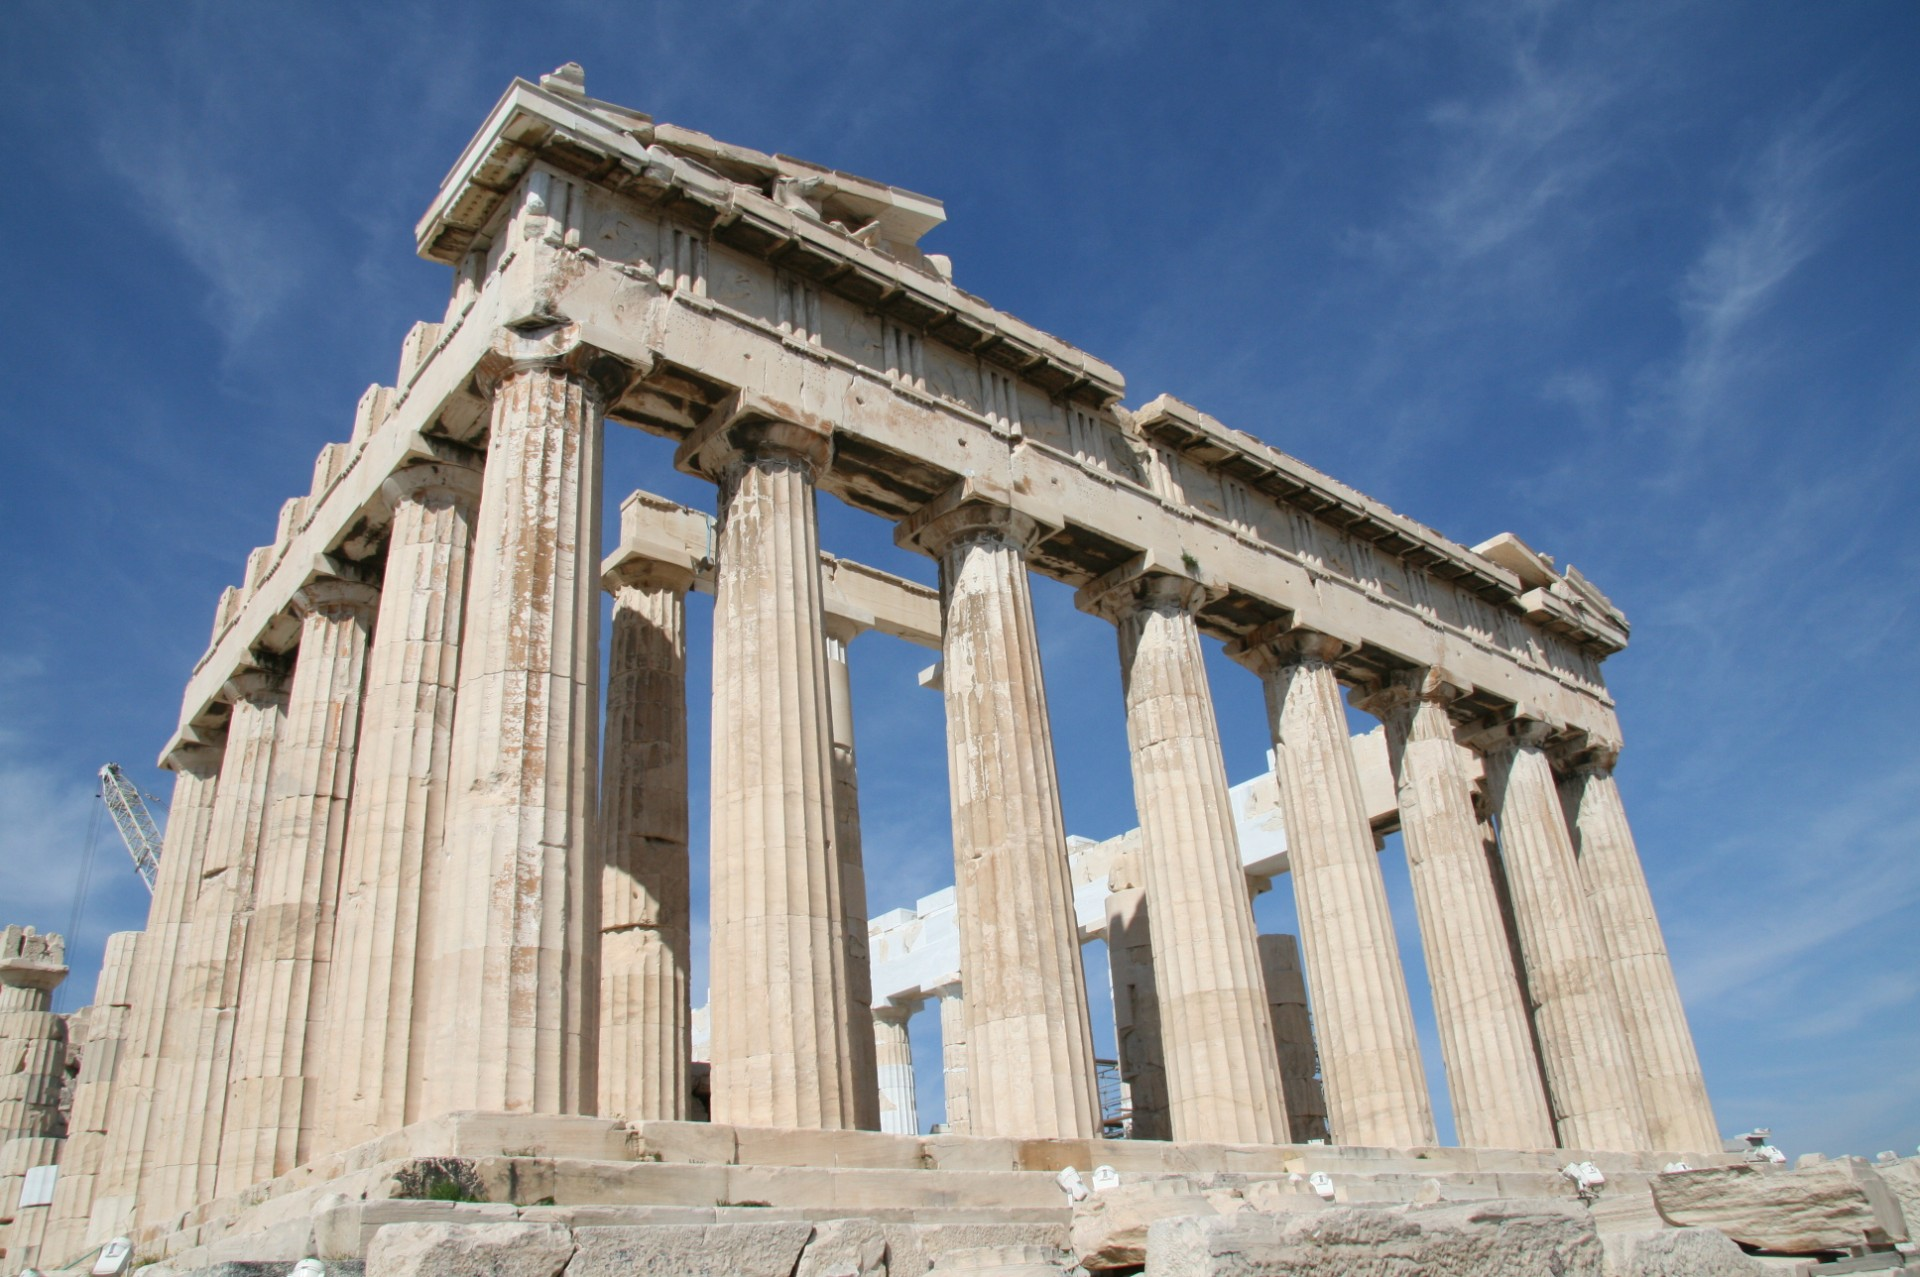 Athenian Group Brings Human Rights Claim For Return Of